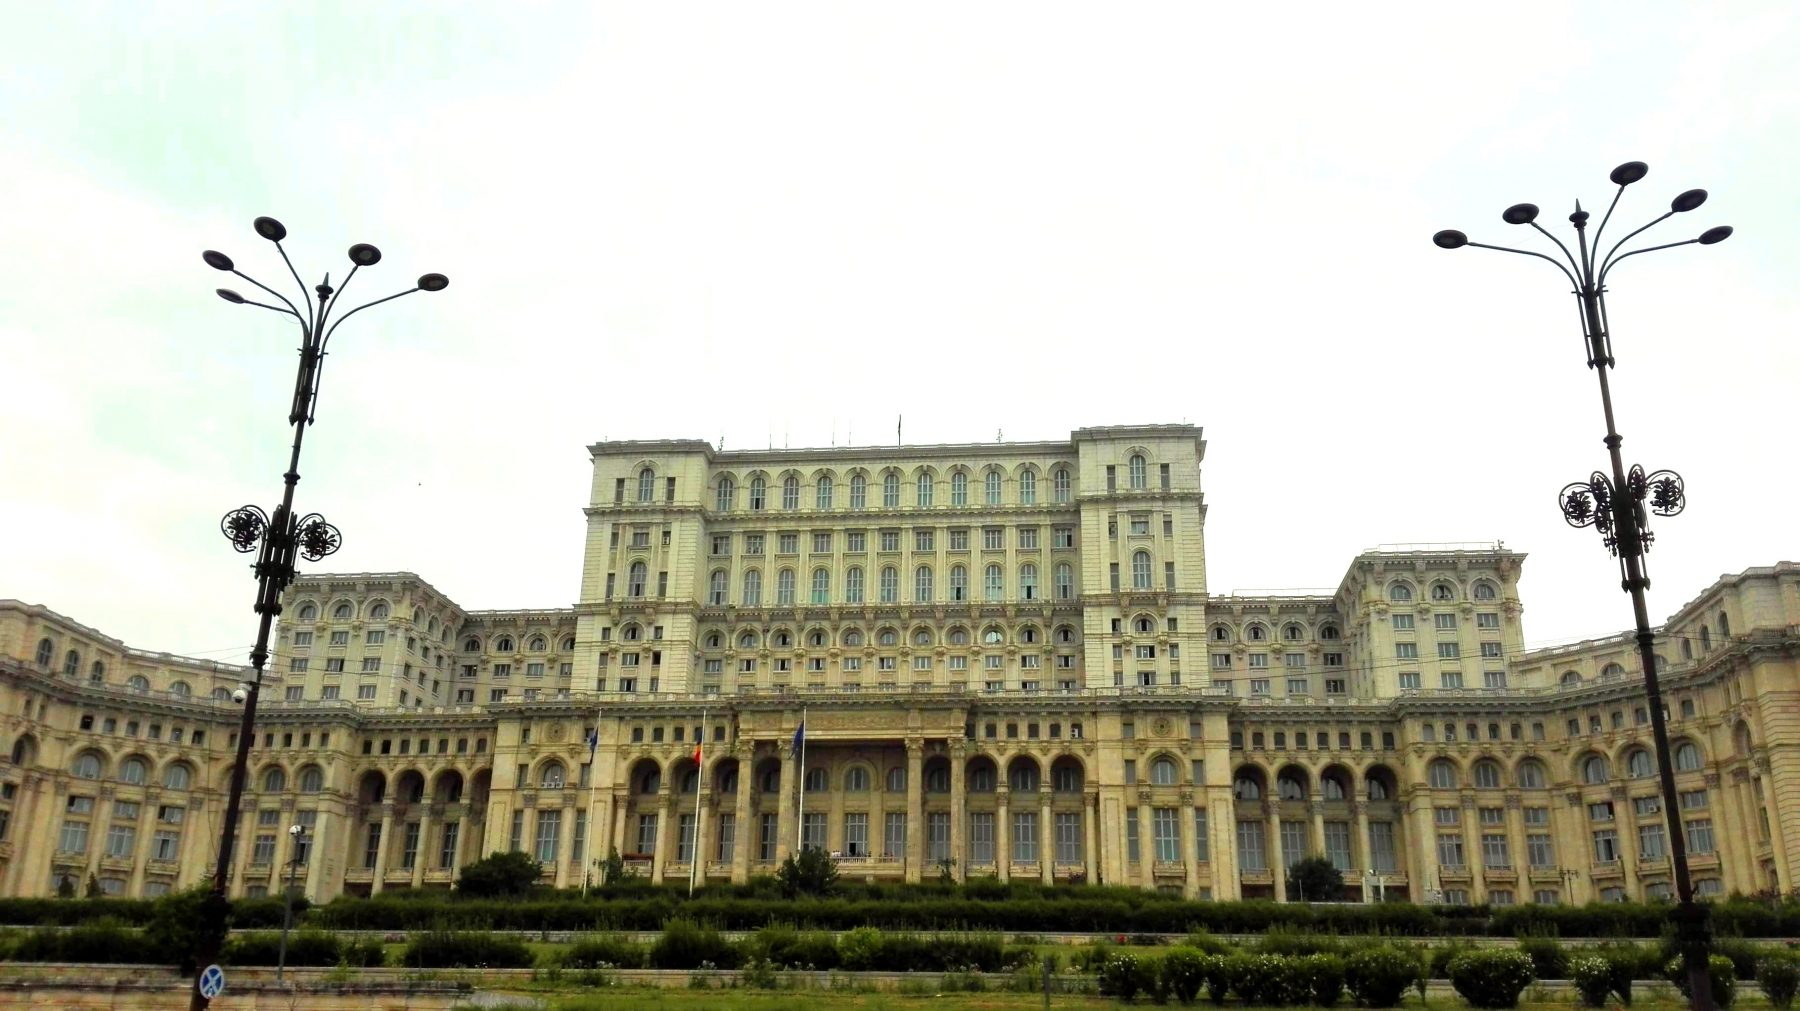 Palace of parliament - moving to Romania